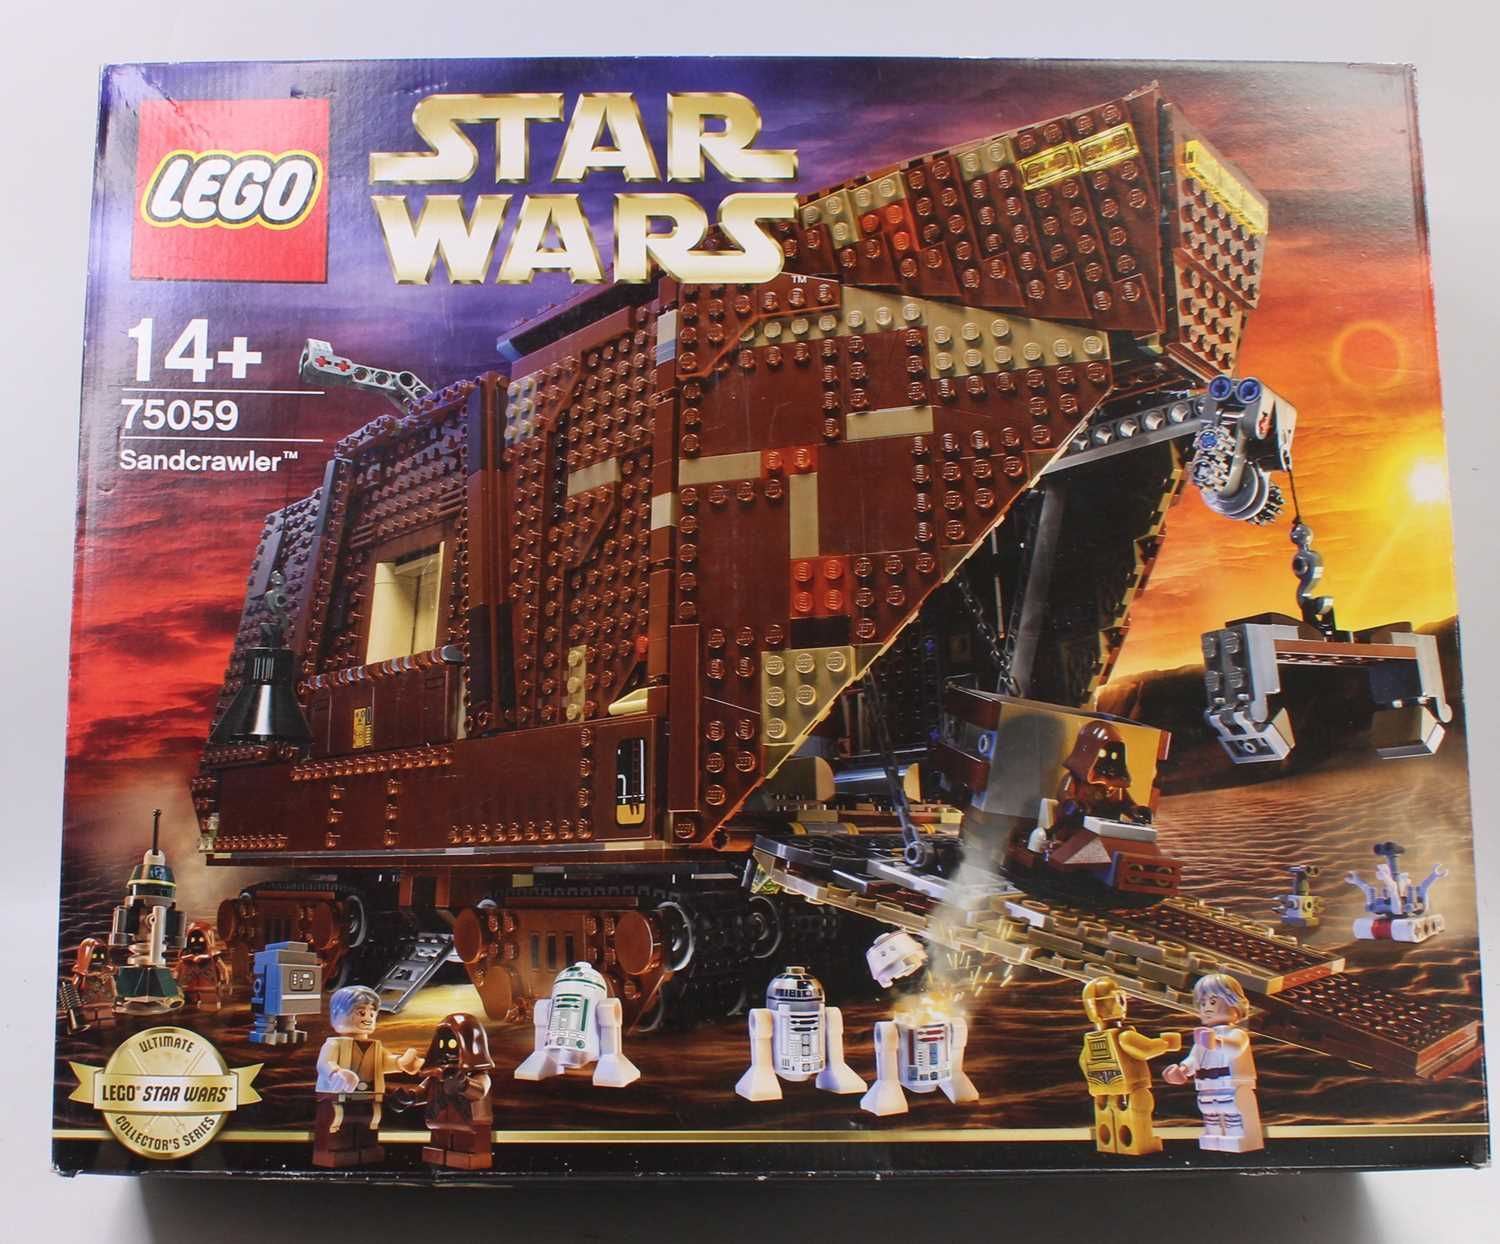 A Lego No. 75059 boxed Sandcrawler Lego construction kit housed in the original box, box has been